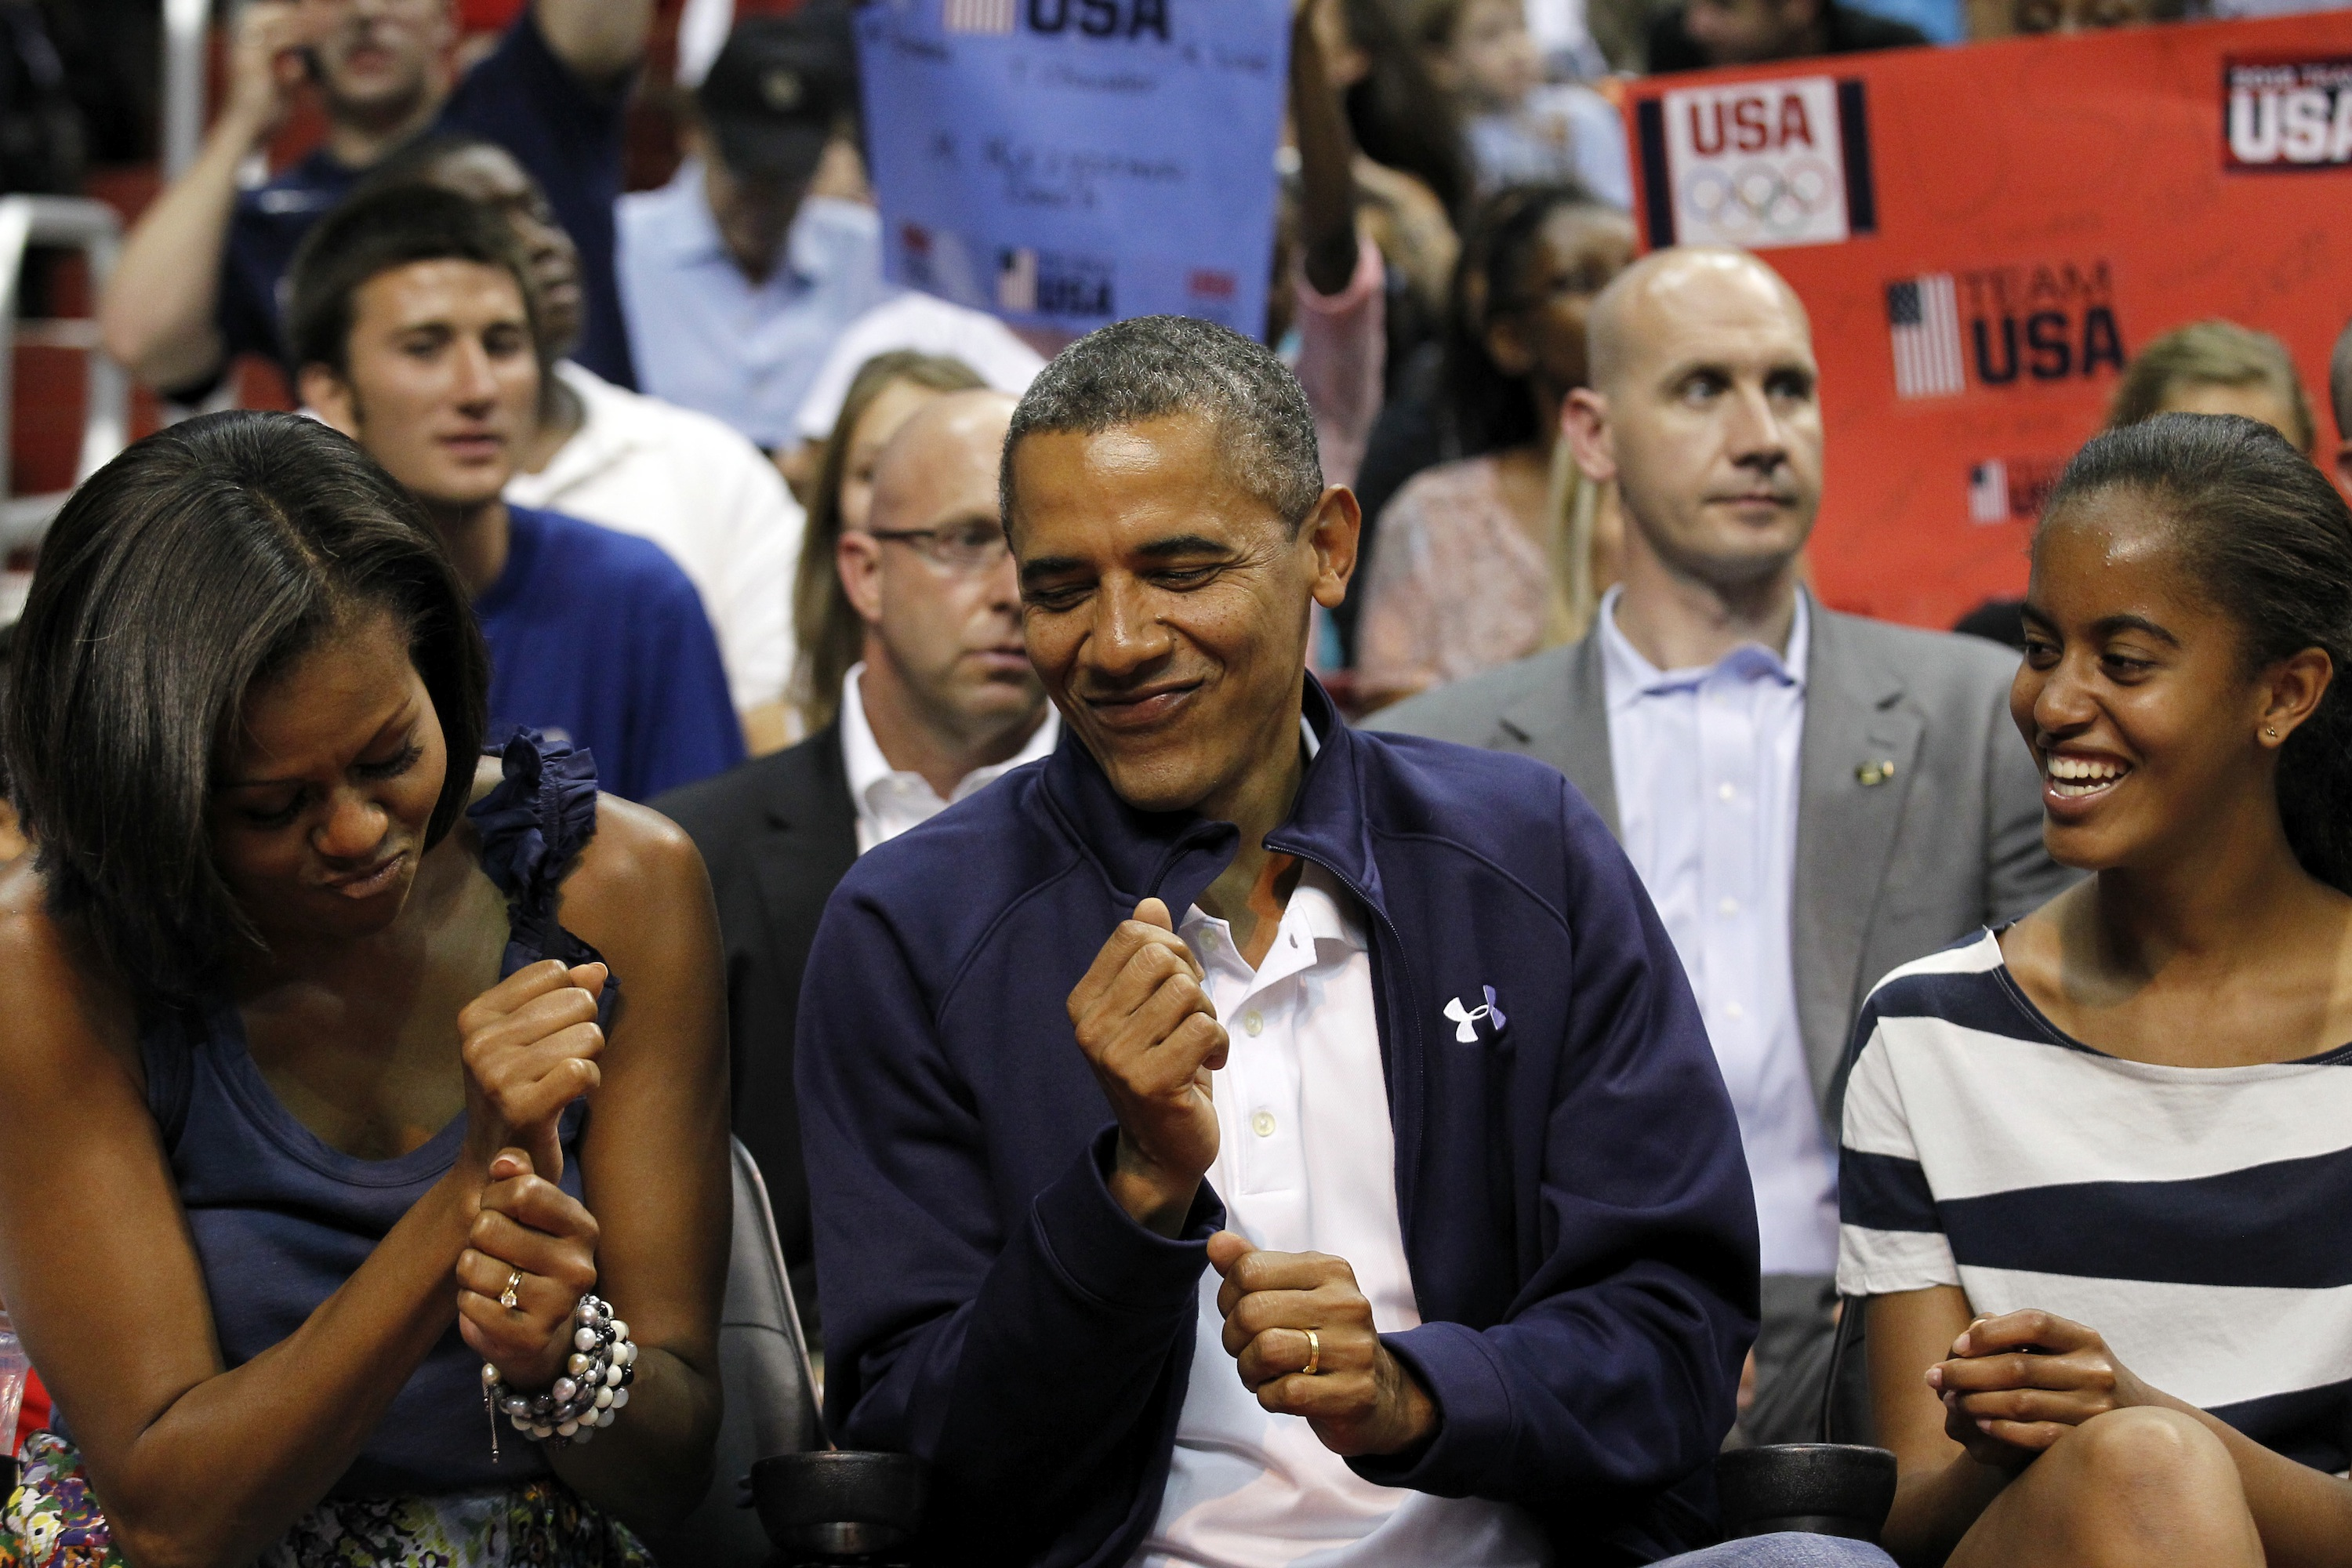 President Barack Obama dances to the music with first lady Michelle Obama, with daughter Malia Obama, right, while attending Team USA and Brazil in an Olympic men's exhibition basketball game, Monday, July 16, 2012, in Washington. Team USA won 80-69. (AP Photo/Alex Brandon)